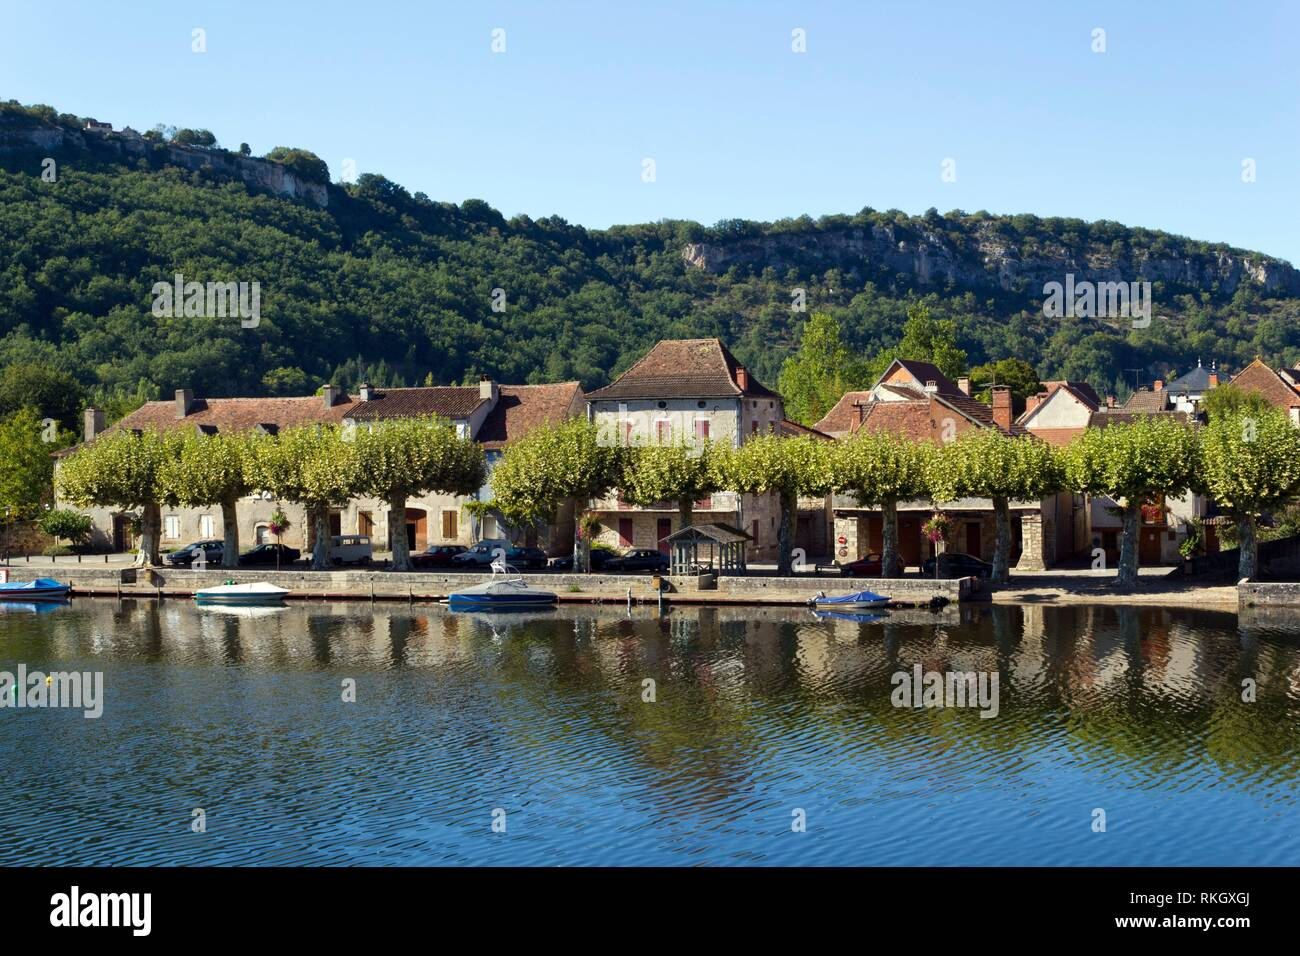 The River Lot at Cajarc in the Lot Valley, Lot, Quercy, France, Europe. - Stock Image